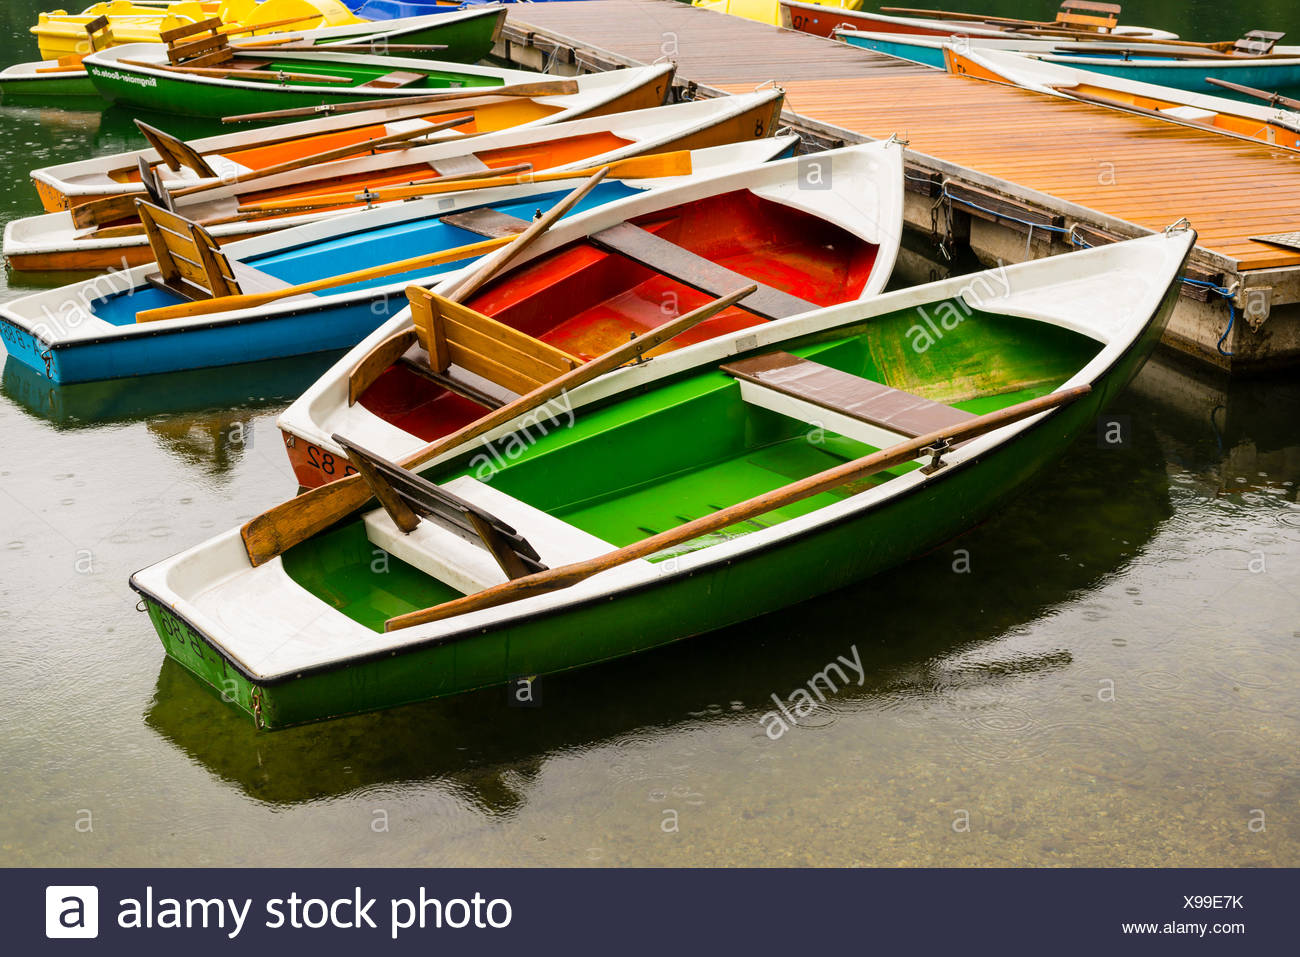 Allgäu, Bavaria, mountain lake, boats, boat rental company, Germany, Europe, Freiberg lake, body of water, Oberstdorf, rain, rai - Stock Image